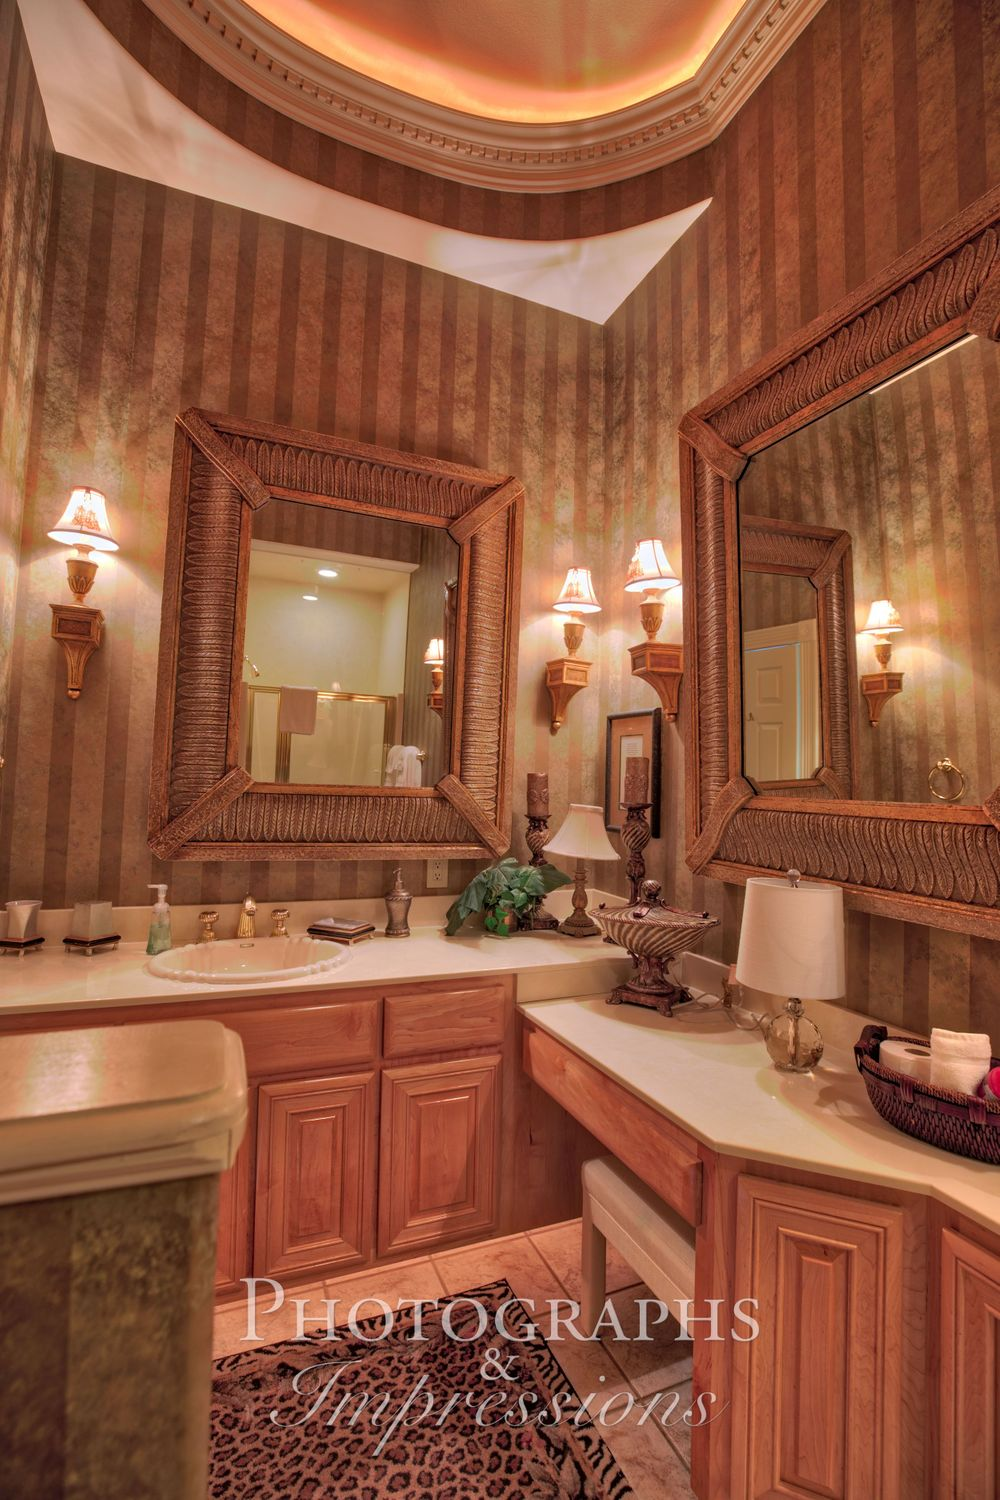 real estate photograph of destiny chalet bathroom by Photographs and Impressions and Nunweiler Photography